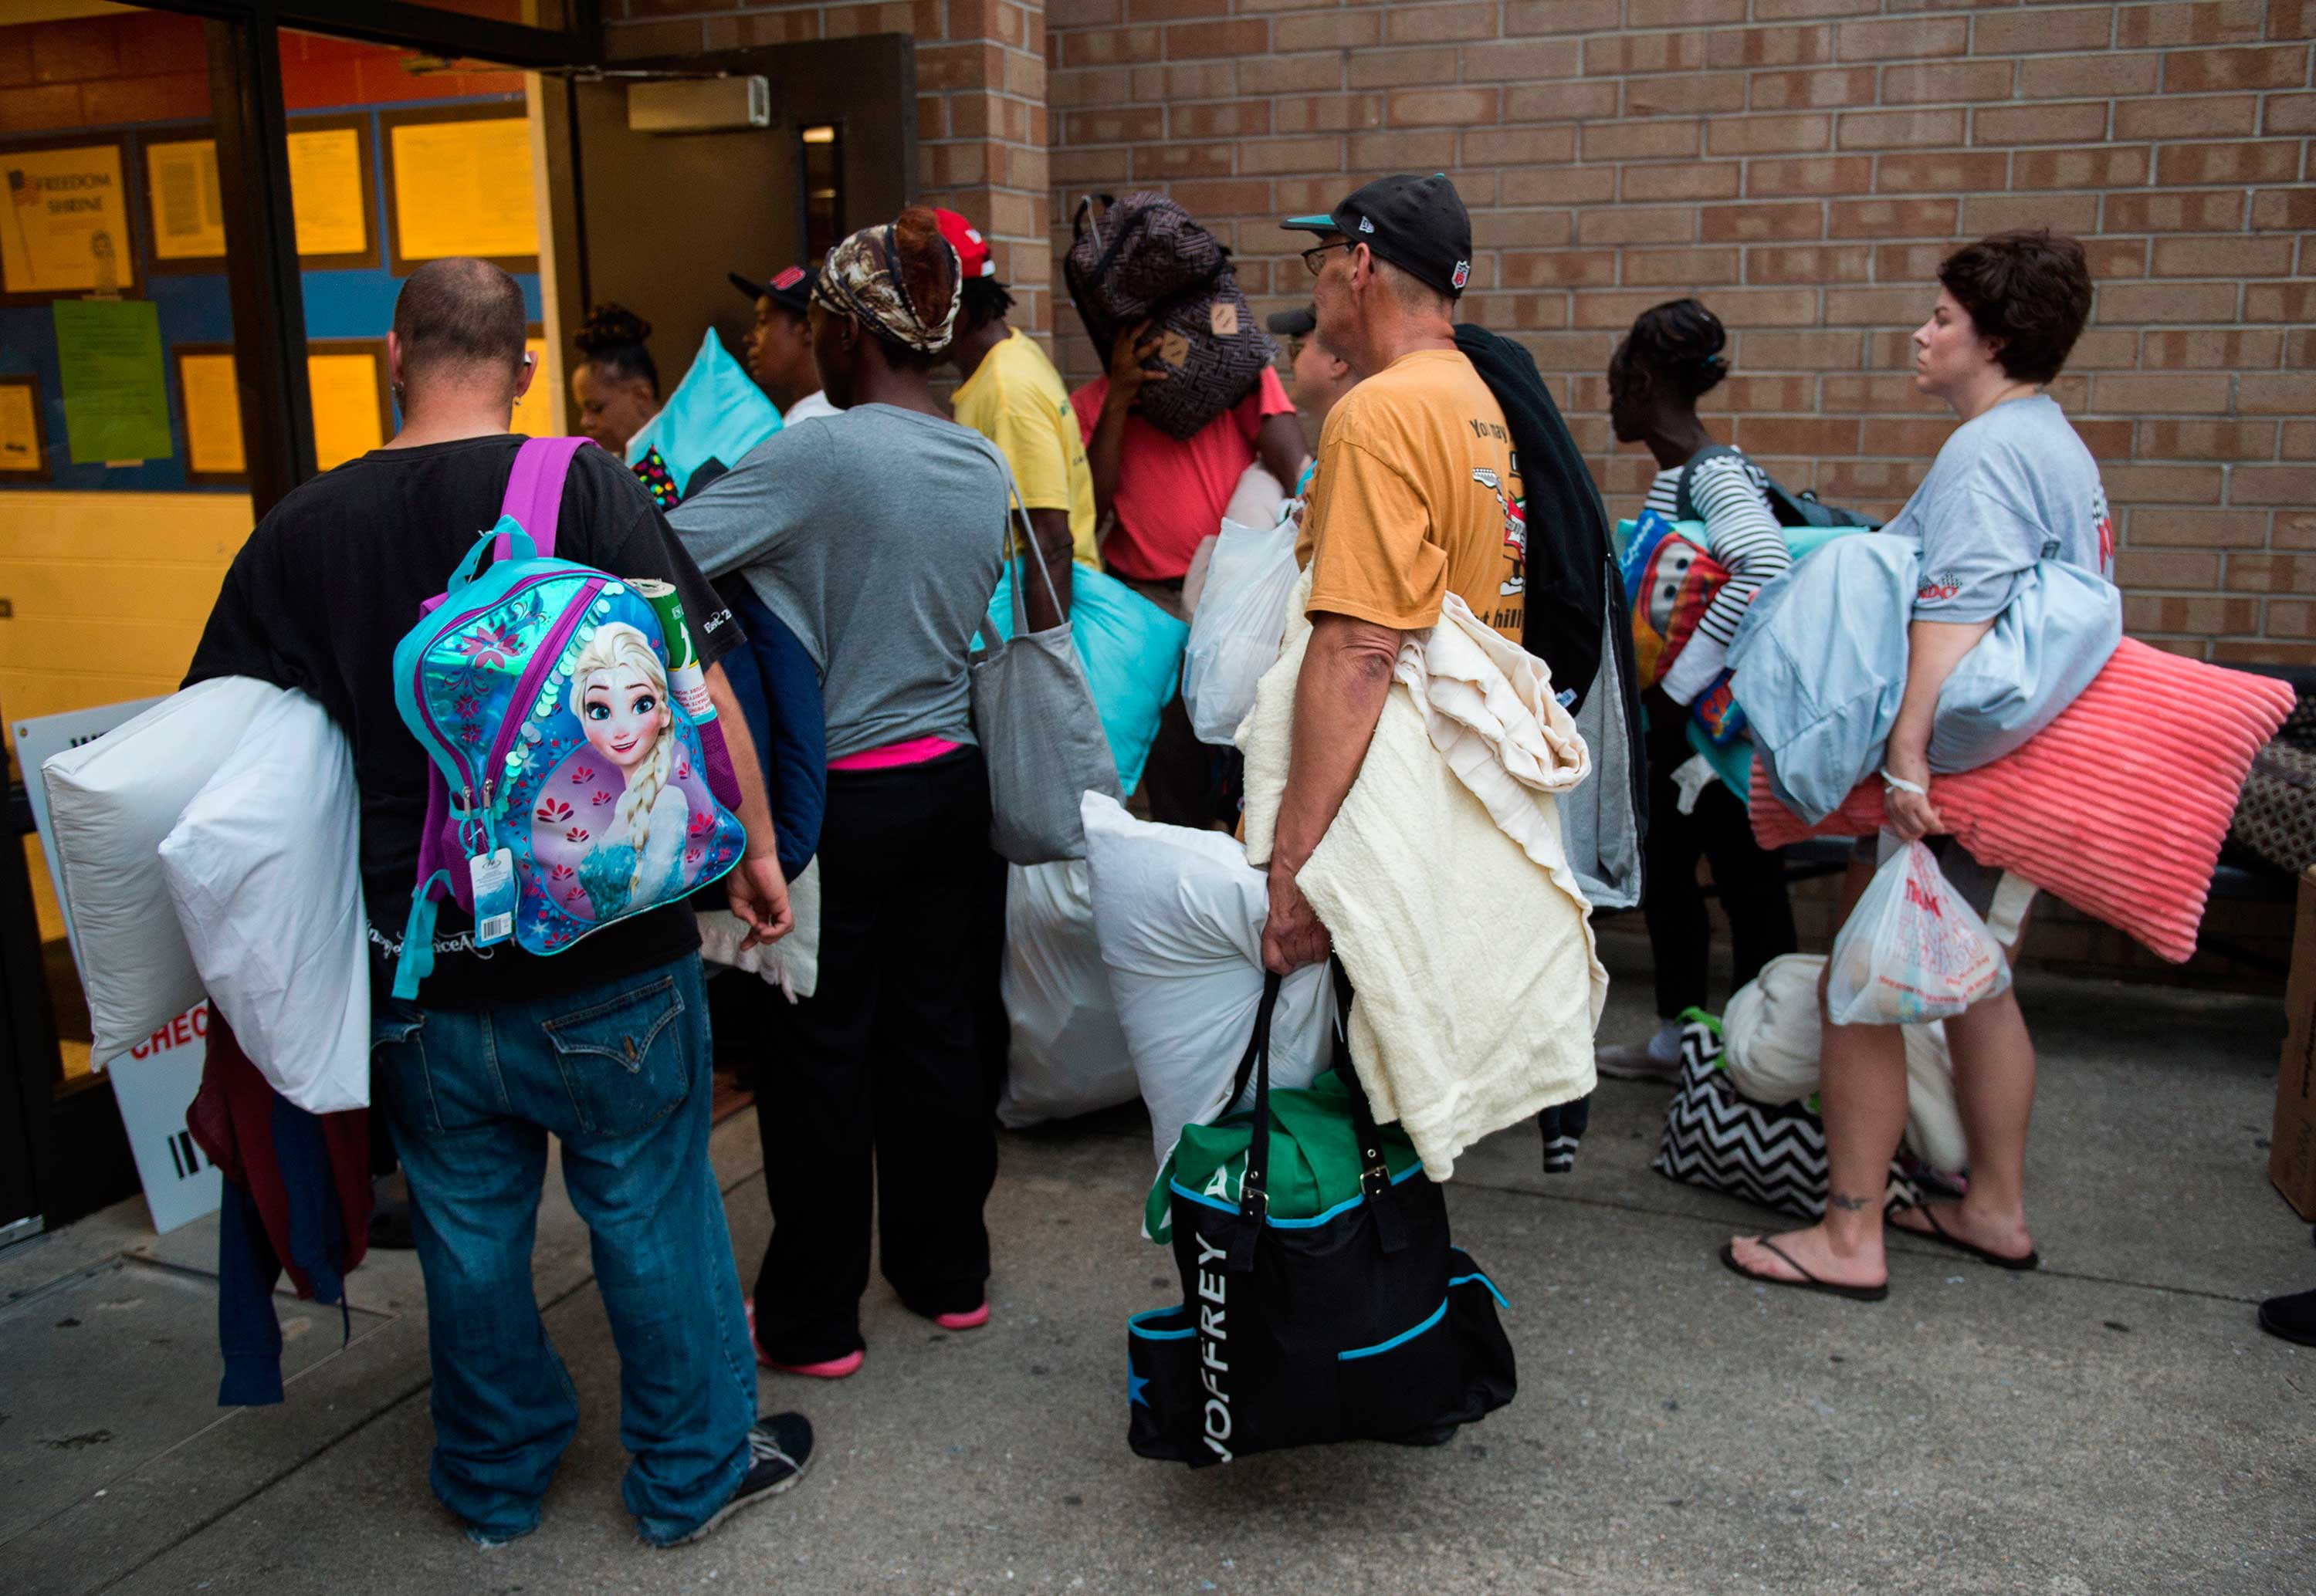 <div class='meta'><div class='origin-logo' data-origin='none'></div><span class='caption-text' data-credit='ANDREW CABALLERO-REYNOLDS/AFP/Getty Images'>People line up to enter a hurricane shelter at Trask Middle School in wilmington, North Carolina, on September 11, 2018.</span></div>